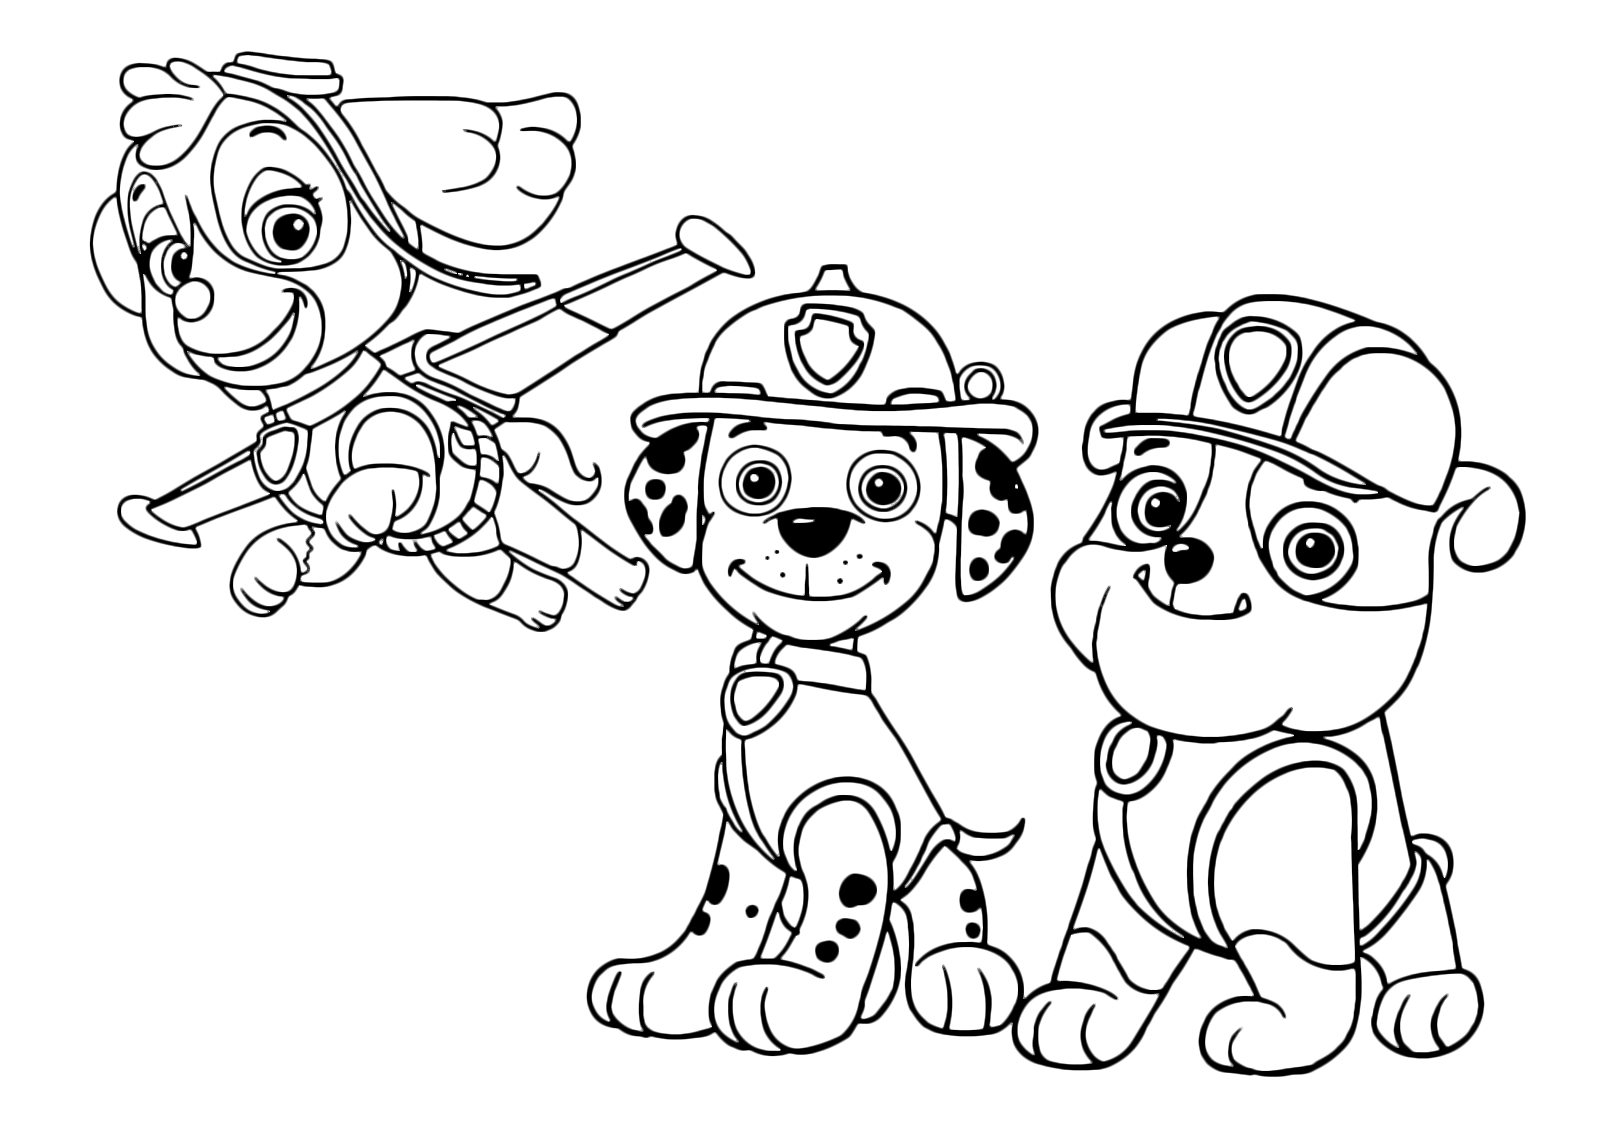 Marshall Paw Patrol Drawing At Getdrawings Com Free For